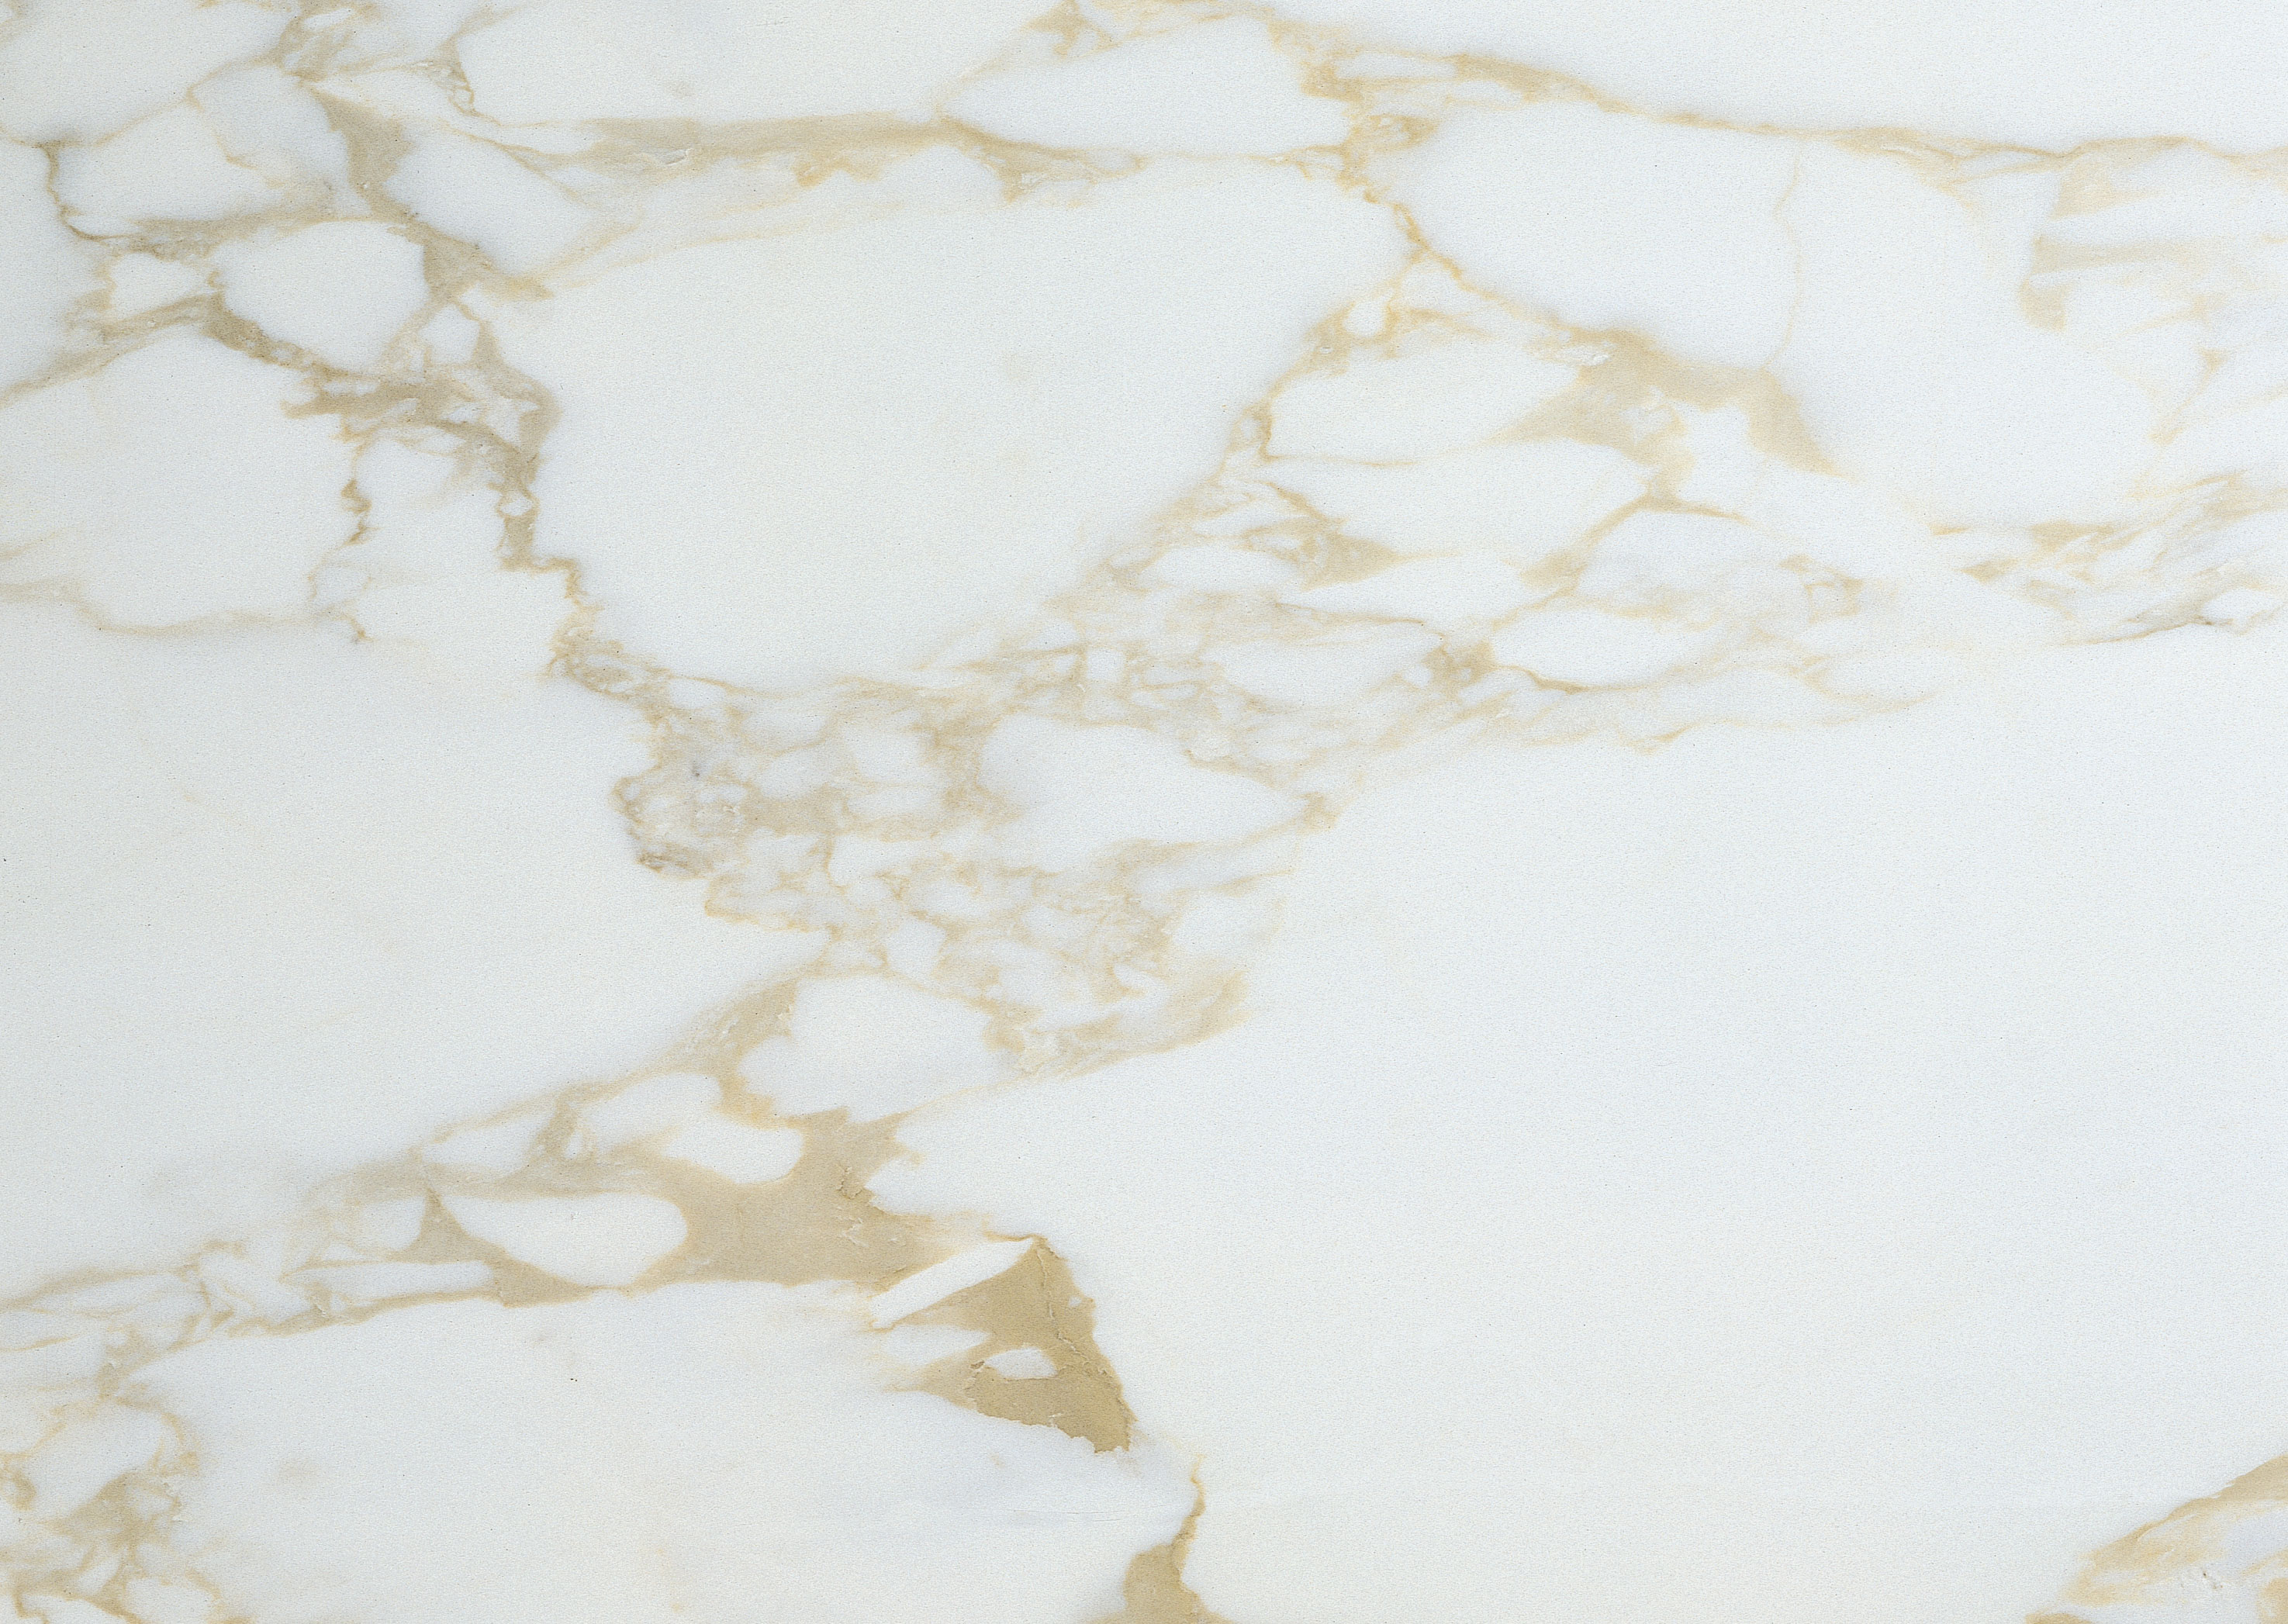 marble texture, background marble image - marble texture, background ...